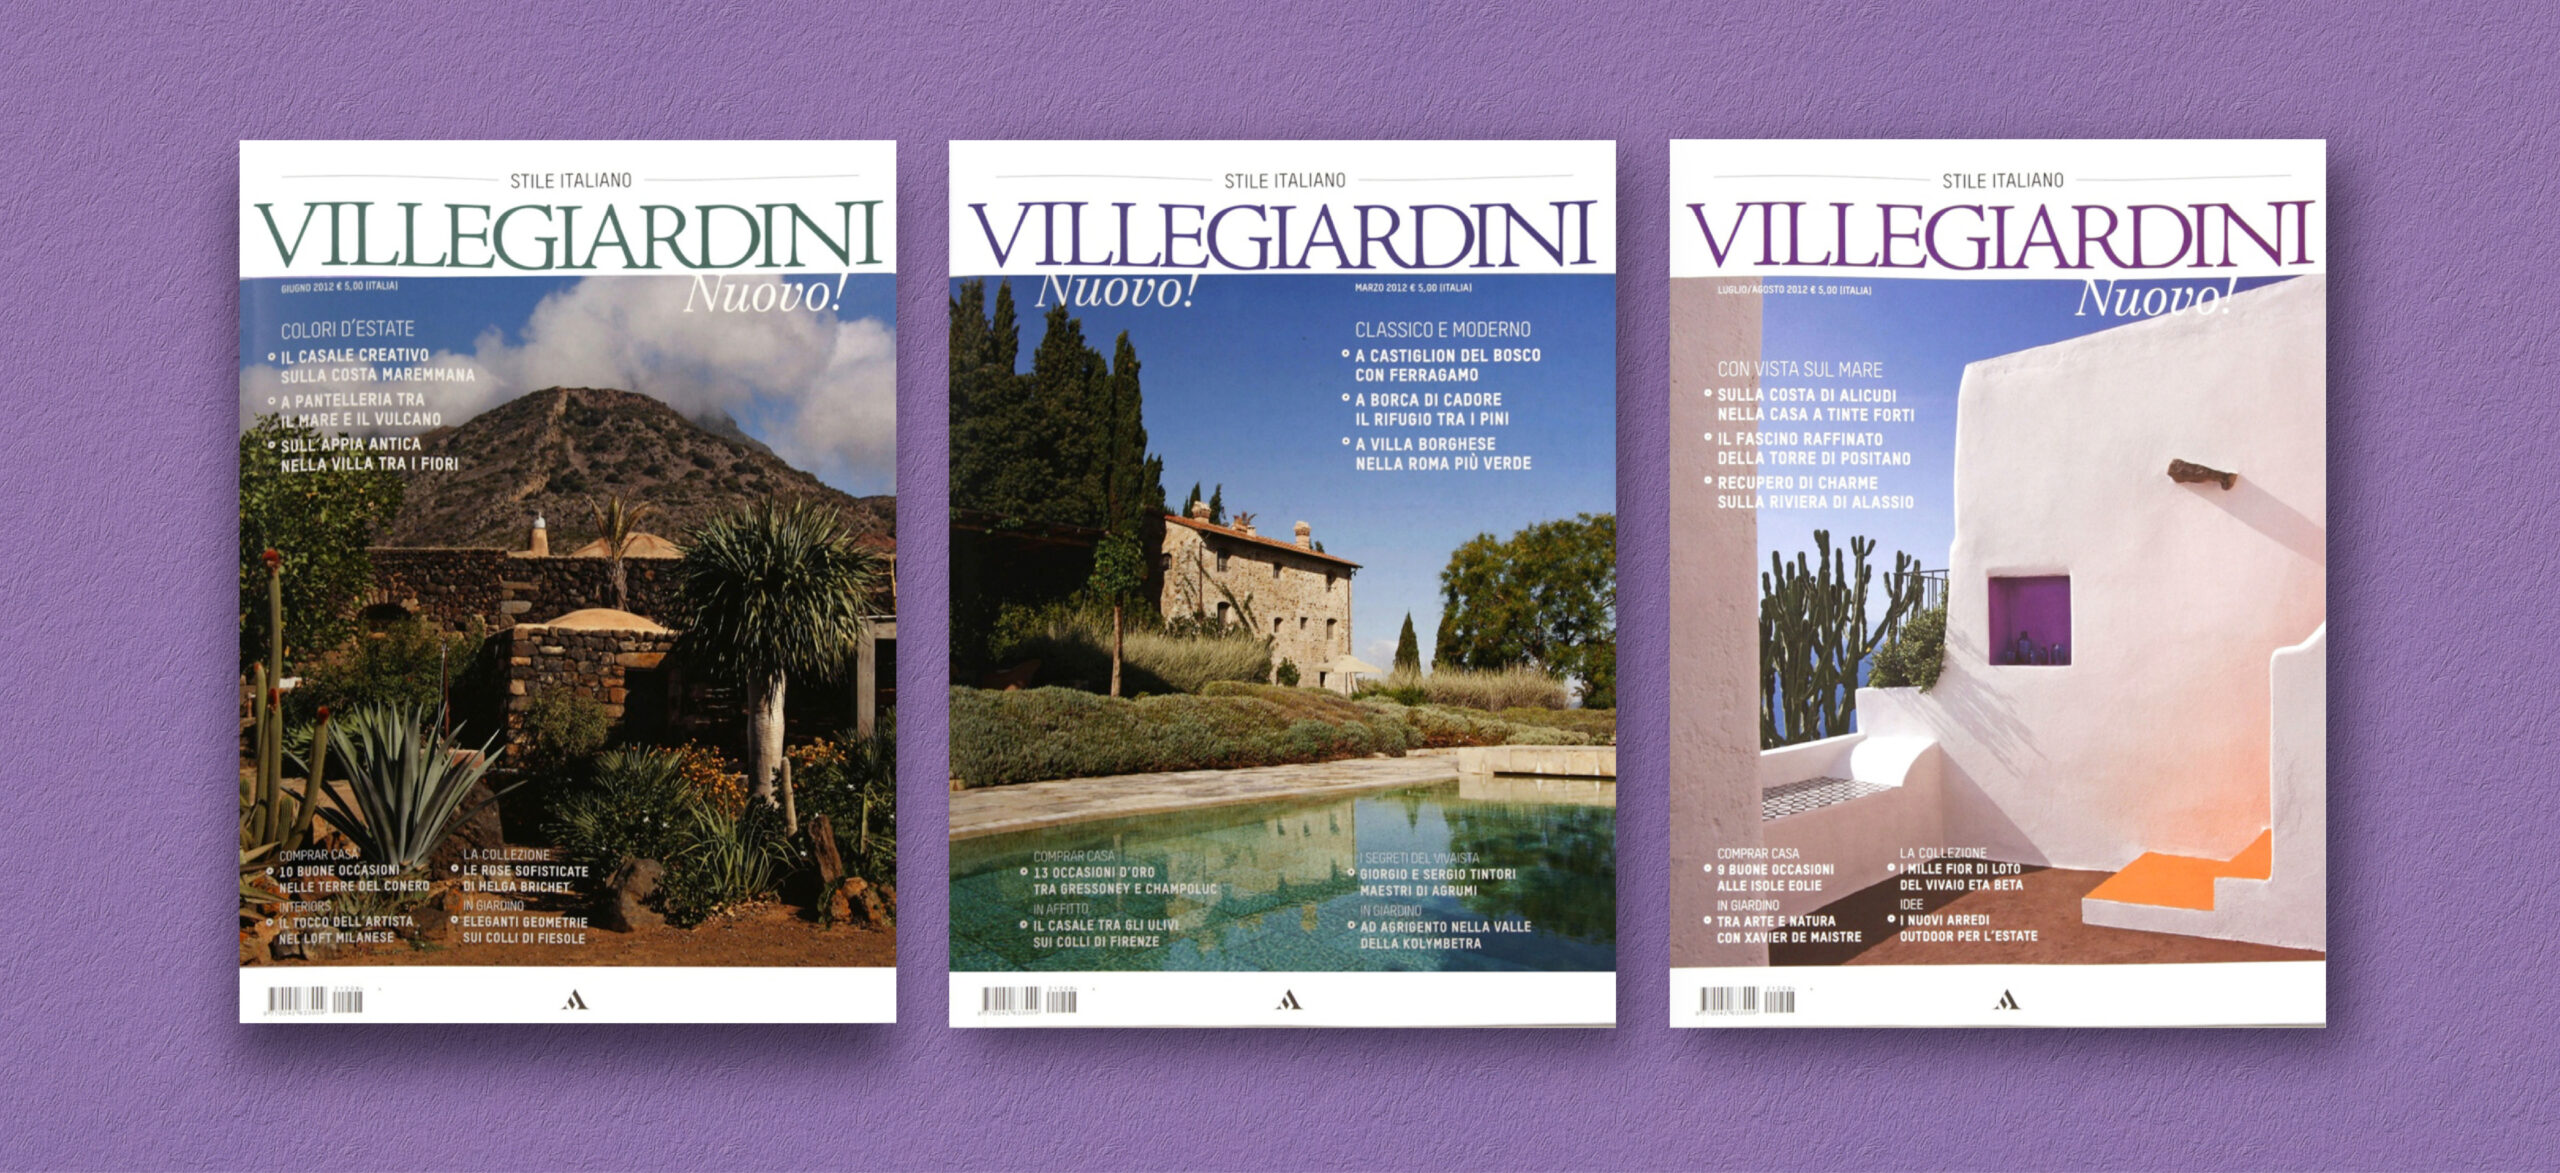 Three covers of Ville Giardini Magazine showing detail of the logo typography and composition of text and images used in the project of the Art Direction and Graphic Design for Visibilia Editore in a light violet background.